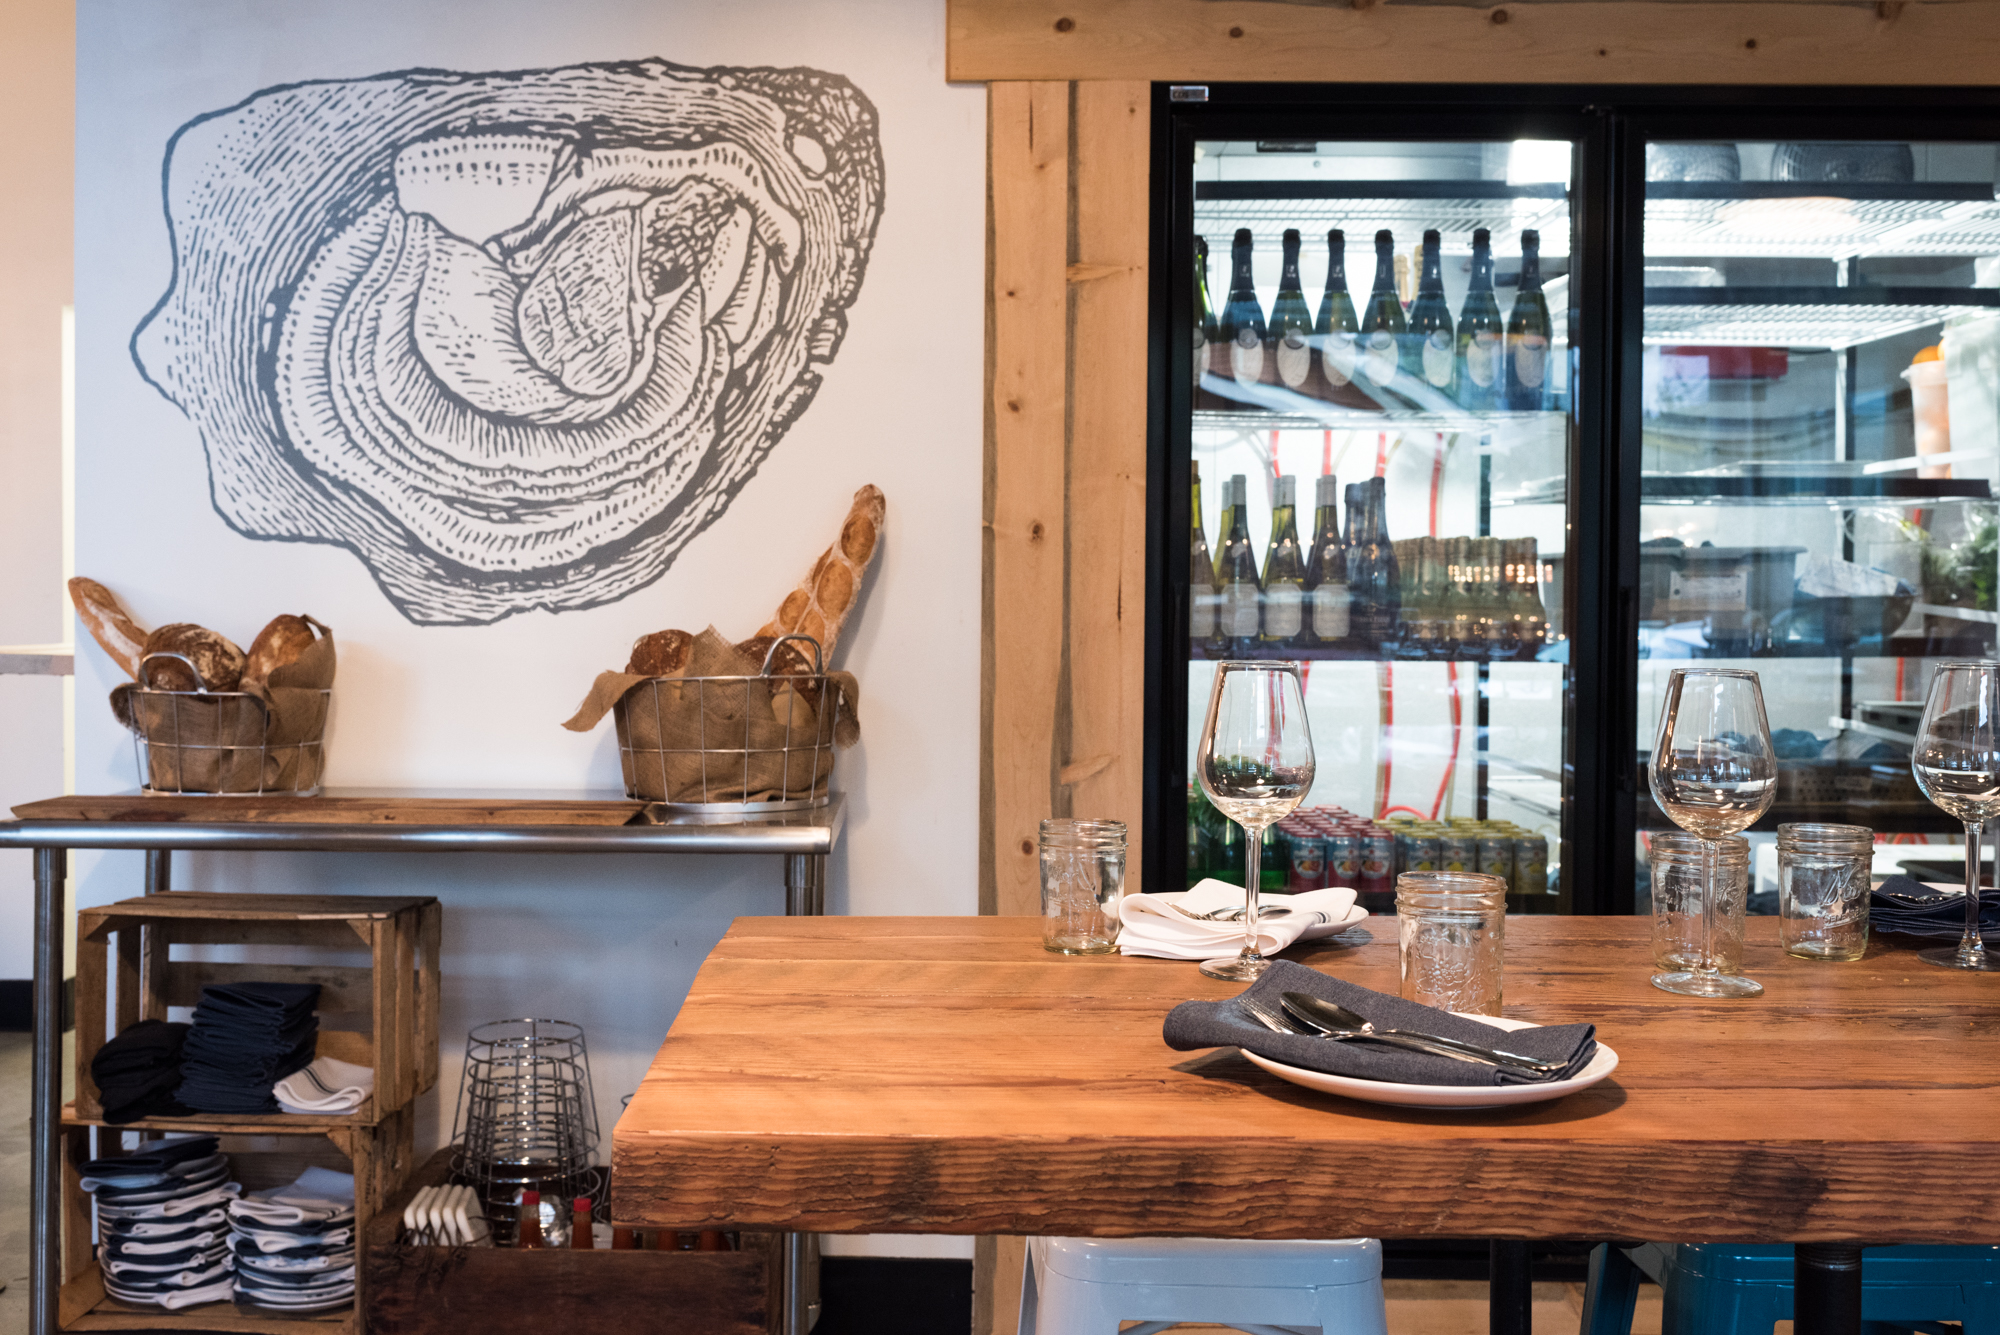 A picture of the interior of Olympia Oyster Bar, with its oyster mural and wine case